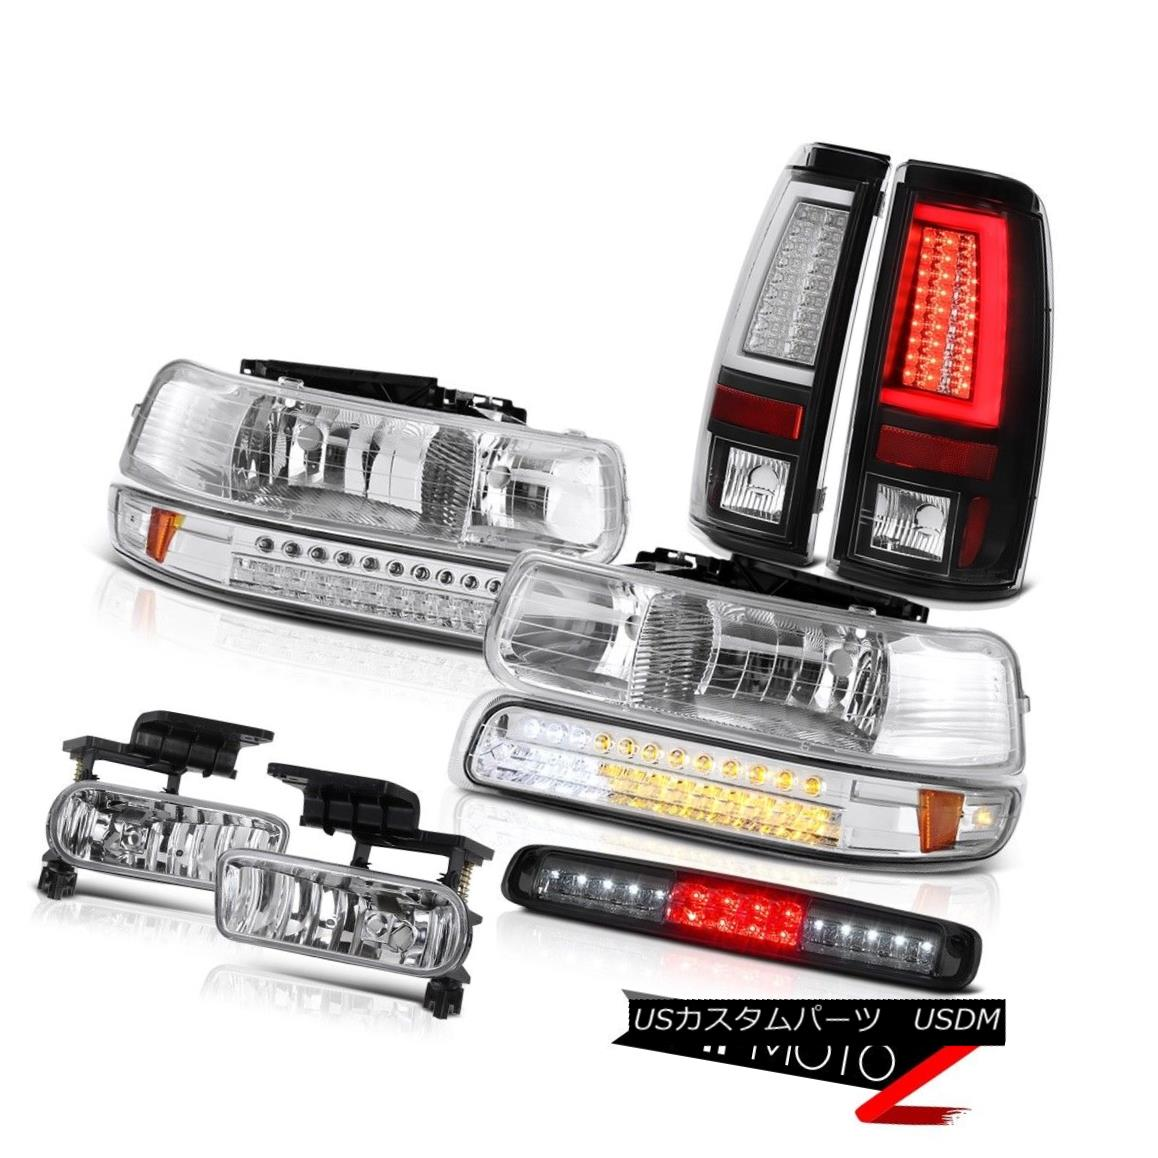 テールライト 99-02 Silverado 5.3L Taillamps Roof Cab Light Euro Chrome Headlamps Fog Lamps 99-02 Silverado 5.3L Taillampsルーフキャブライトユーロクロームヘッドランプフォグランプ